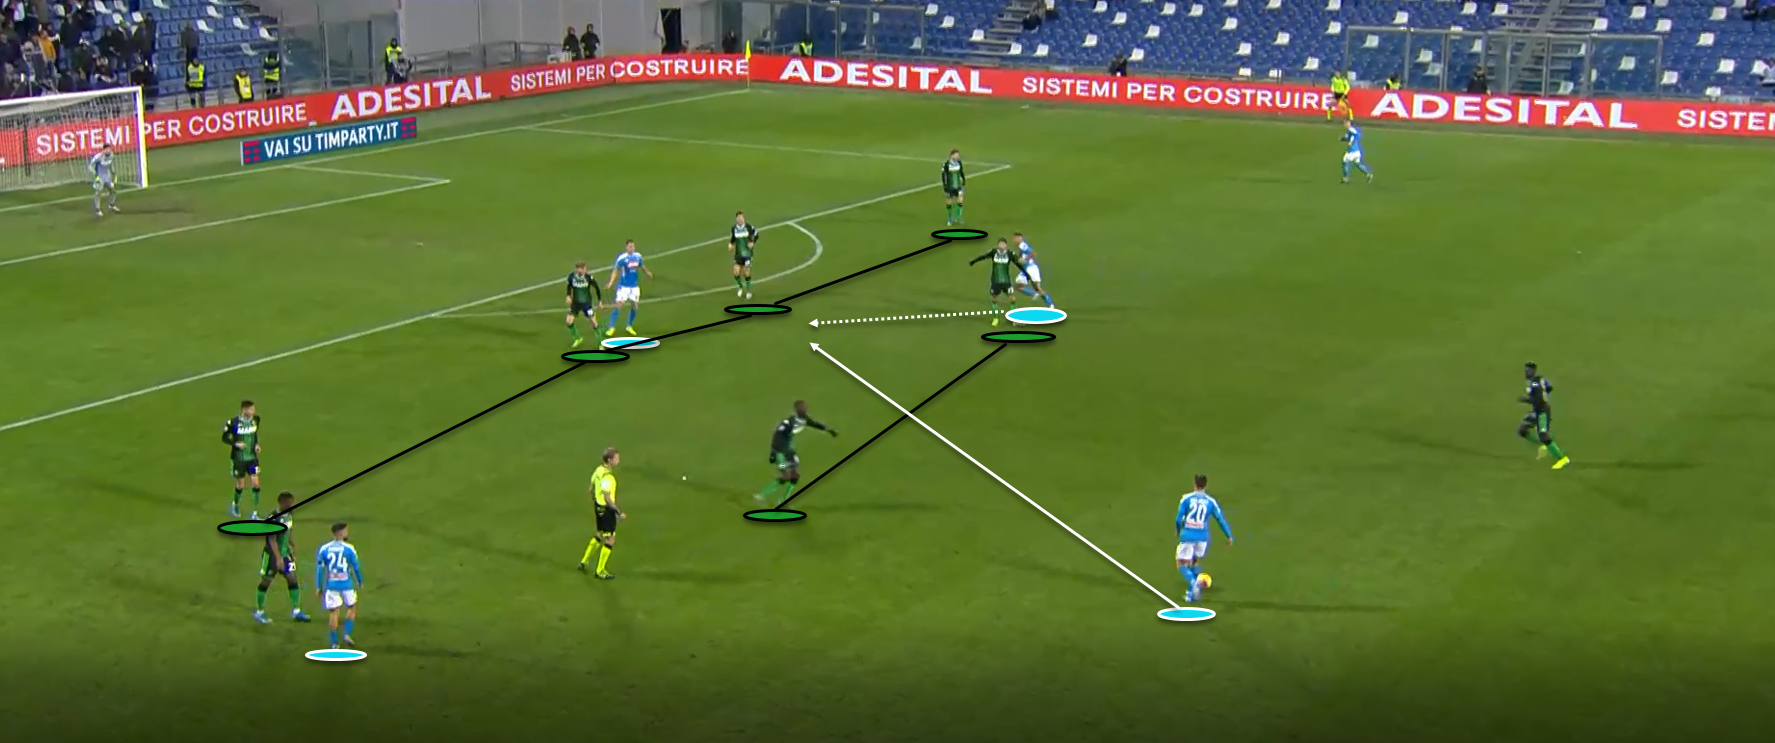 Serie A 2019/20: Sassuolo Vs Napoli - Tactical Analysis